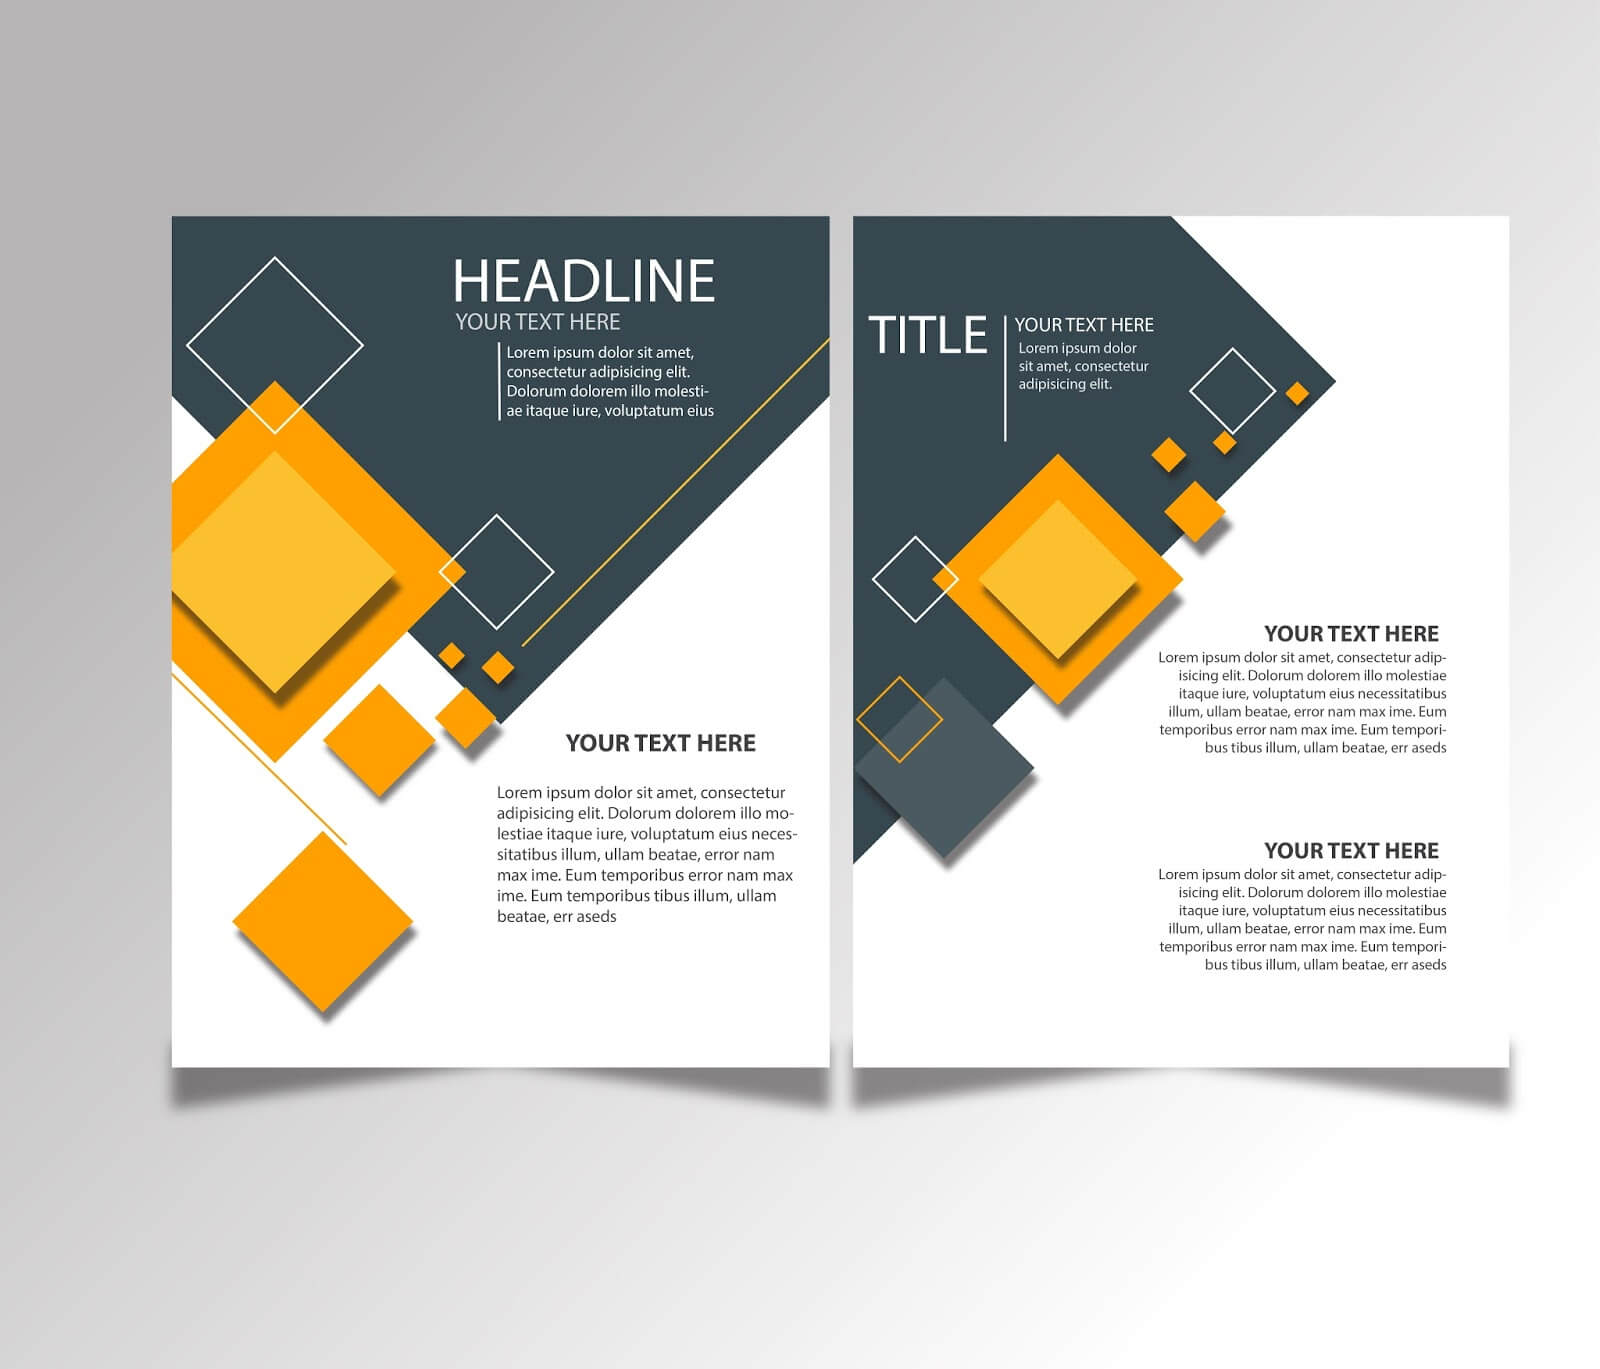 Free Download Brochure Design Templates Ai Files - Ideosprocess With Adobe Illustrator Brochure Templates Free Download